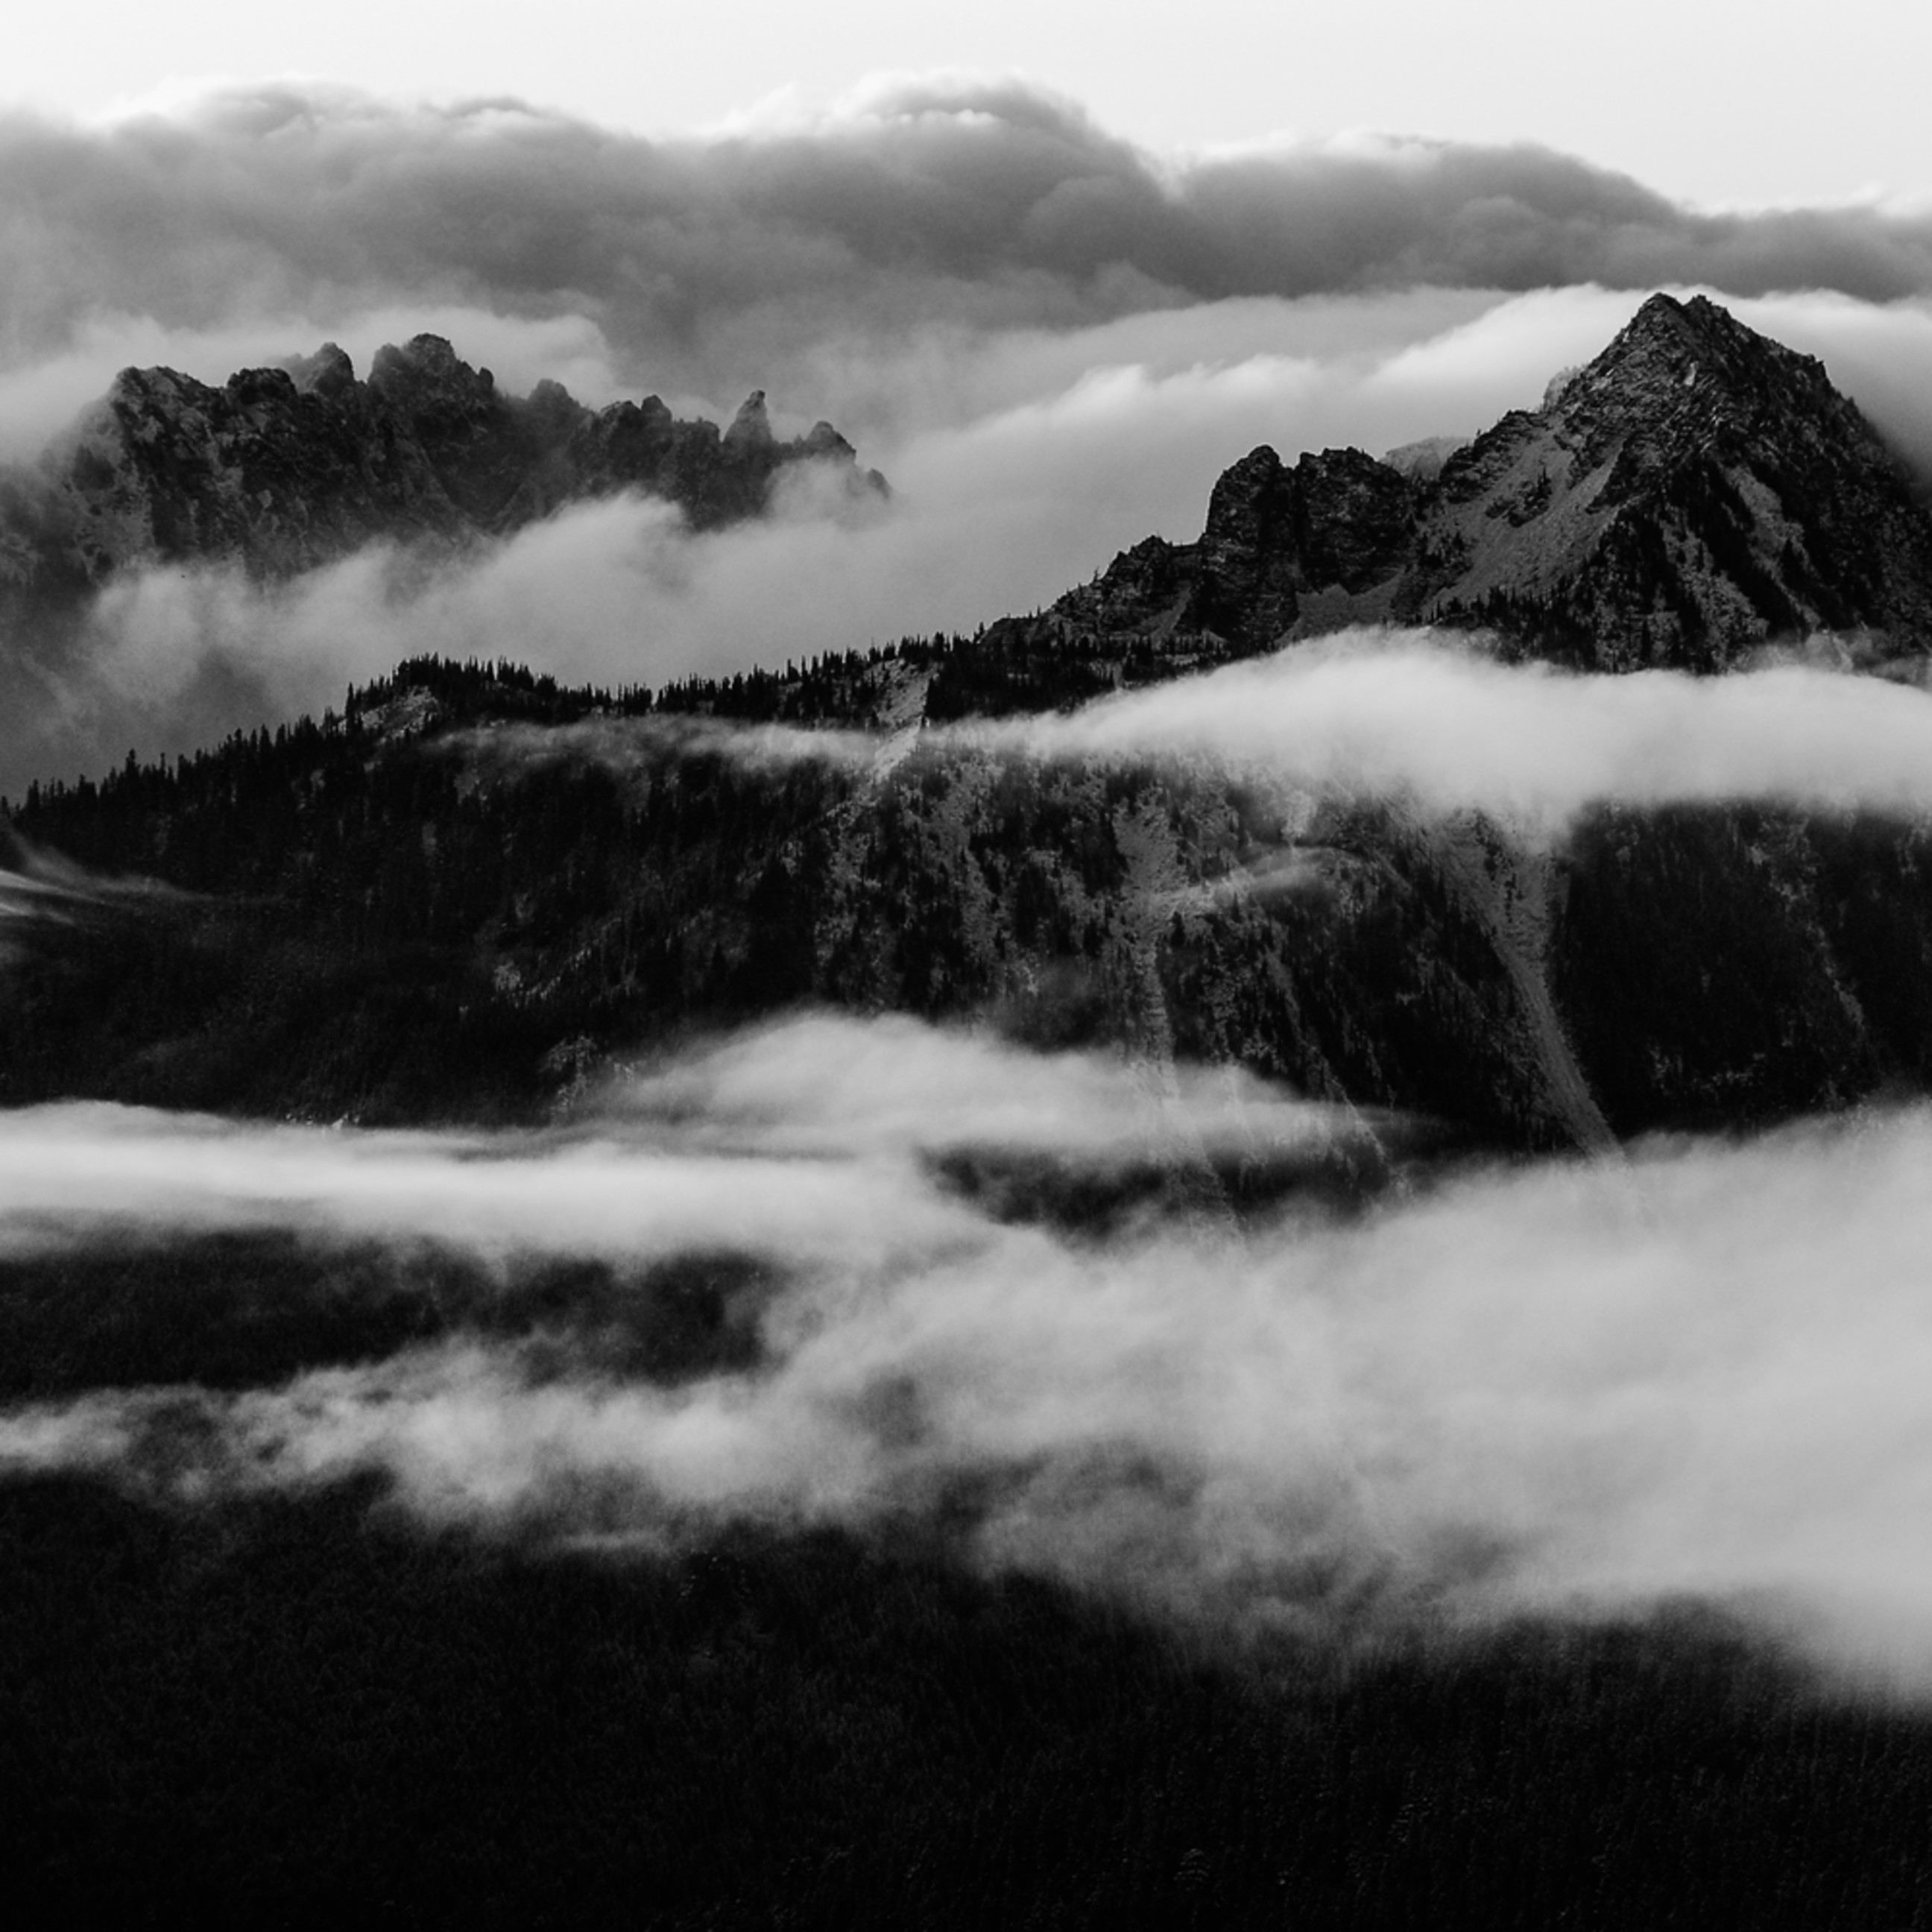 Mountain ranges sunrise mt rainier washington bw gmjomm